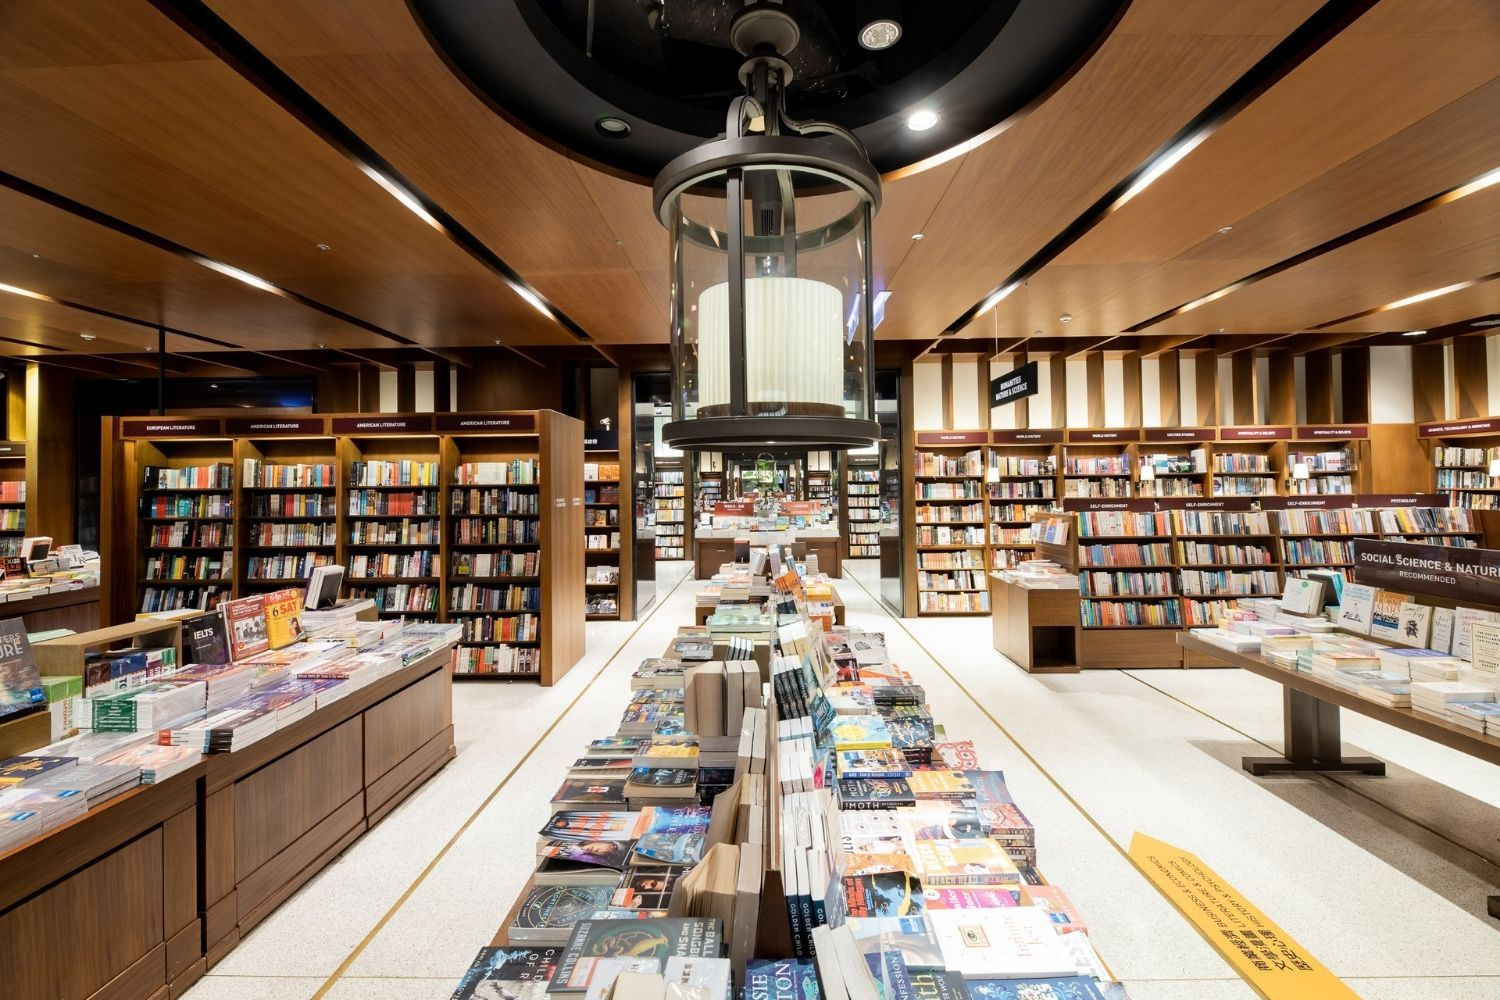 Eslite Spectrum, Hailed As The World's Coolest Bookstore, Will Open At The Starhill In 2022